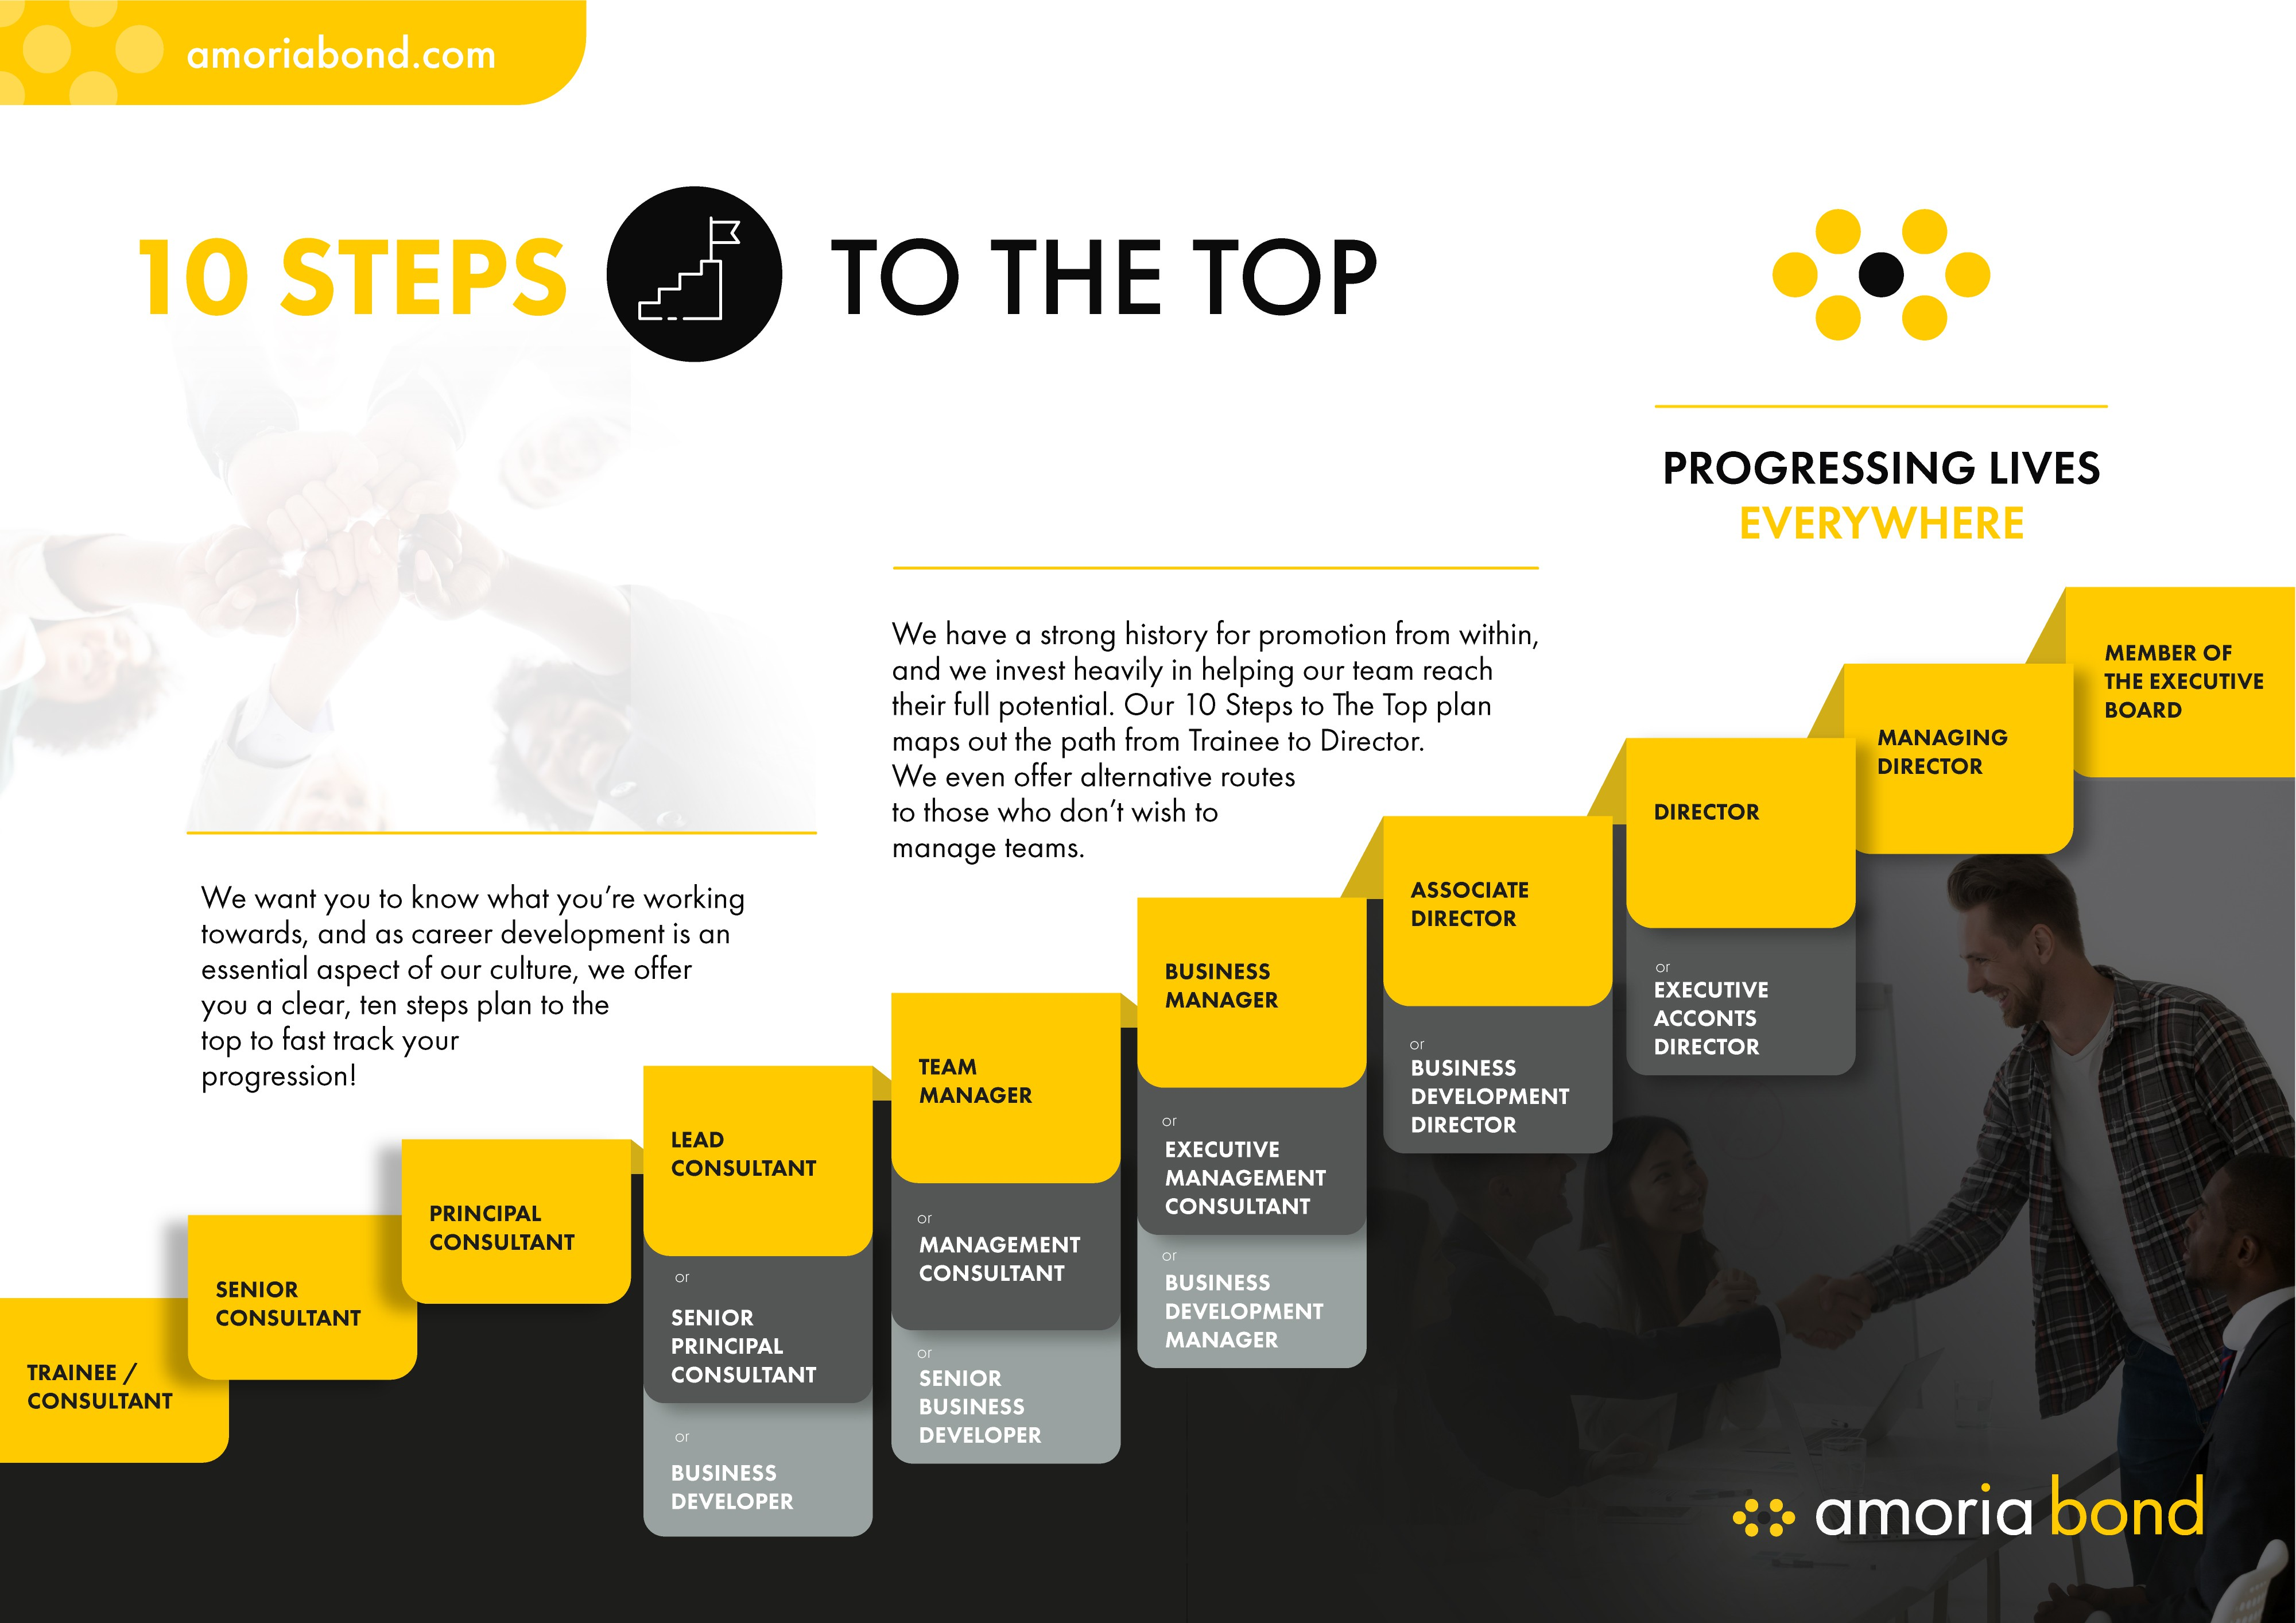 Create a new version of the 10 Steps info graphic